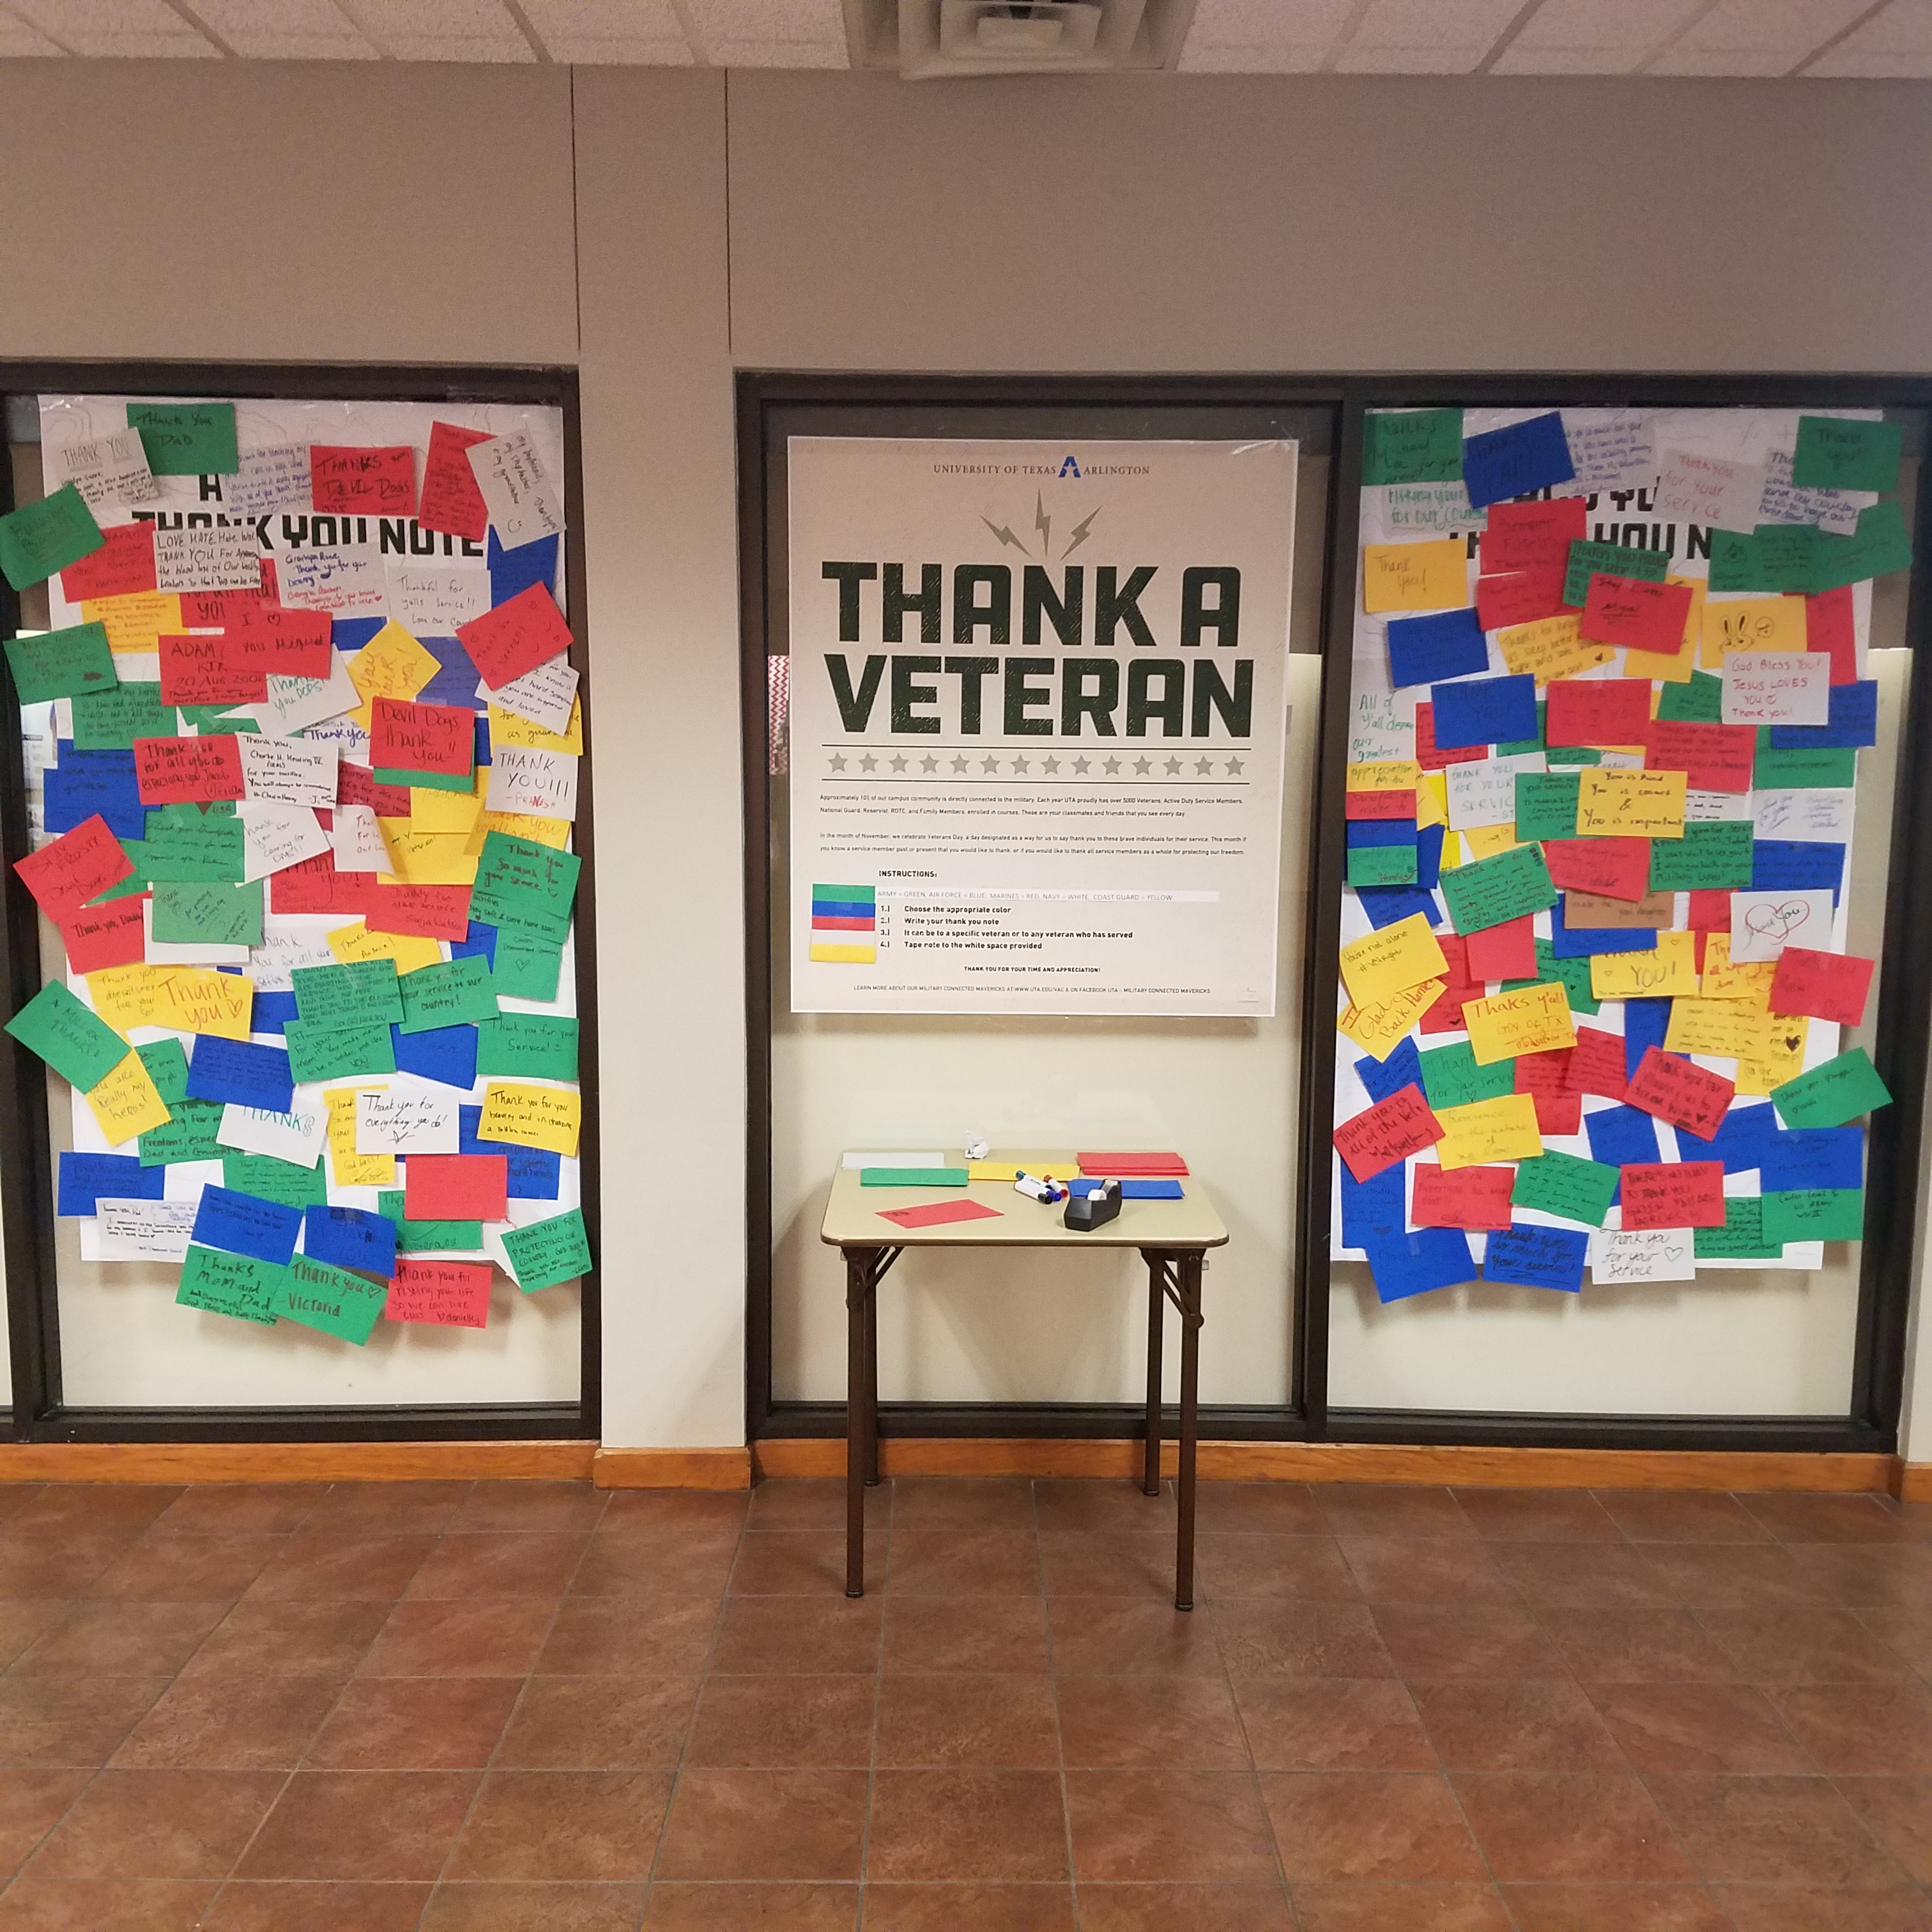 Bulletin boards with post it notes of many colors labeled 'thank a veteran'